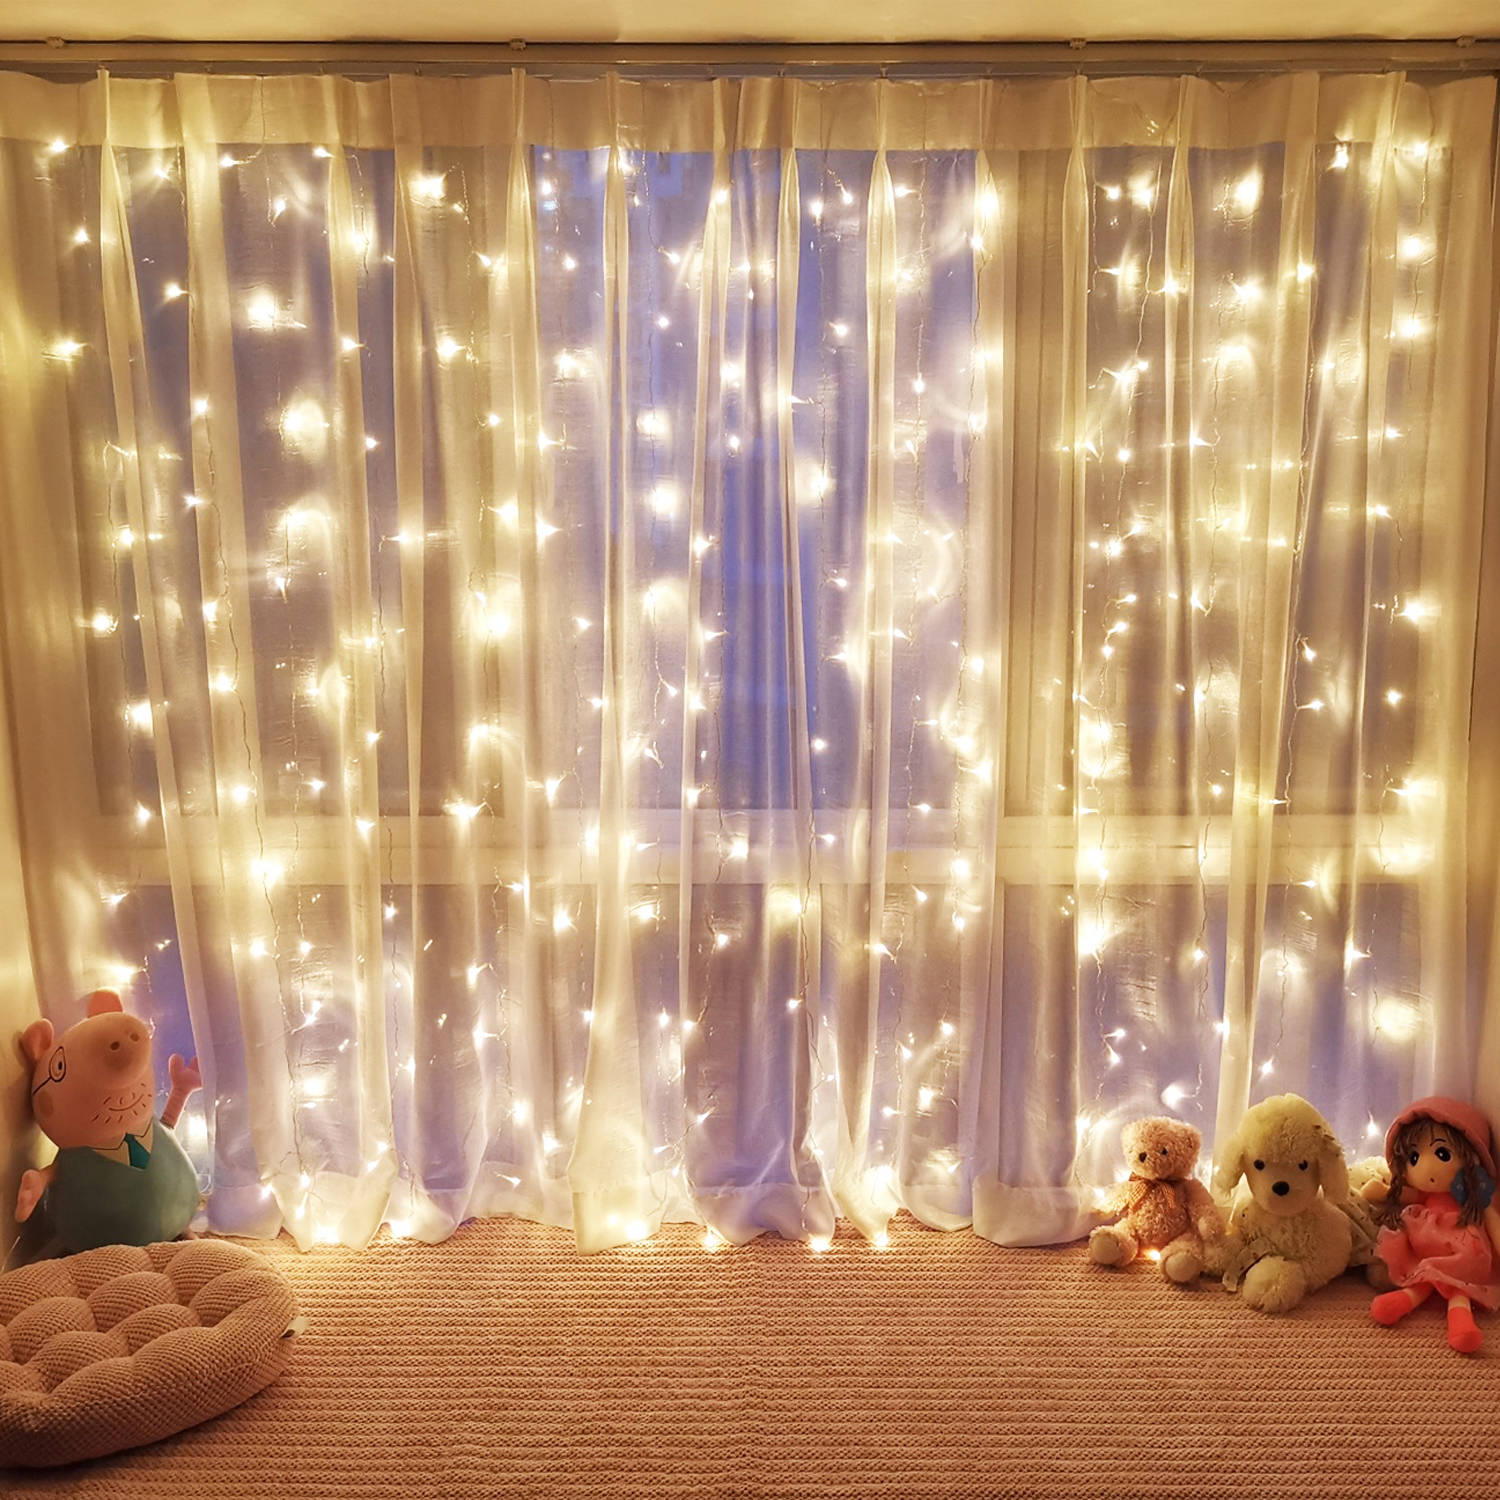 2x2/3x2/3x3m led icicle led curtain fairy string <font><b>light</b></font> fairy <font><b>light</b></font> 300 led Christmas <font><b>light</b></font> <font><b>for</b></font> Wedding <font><b>home</b></font> window party <font><b>decor</b></font> image